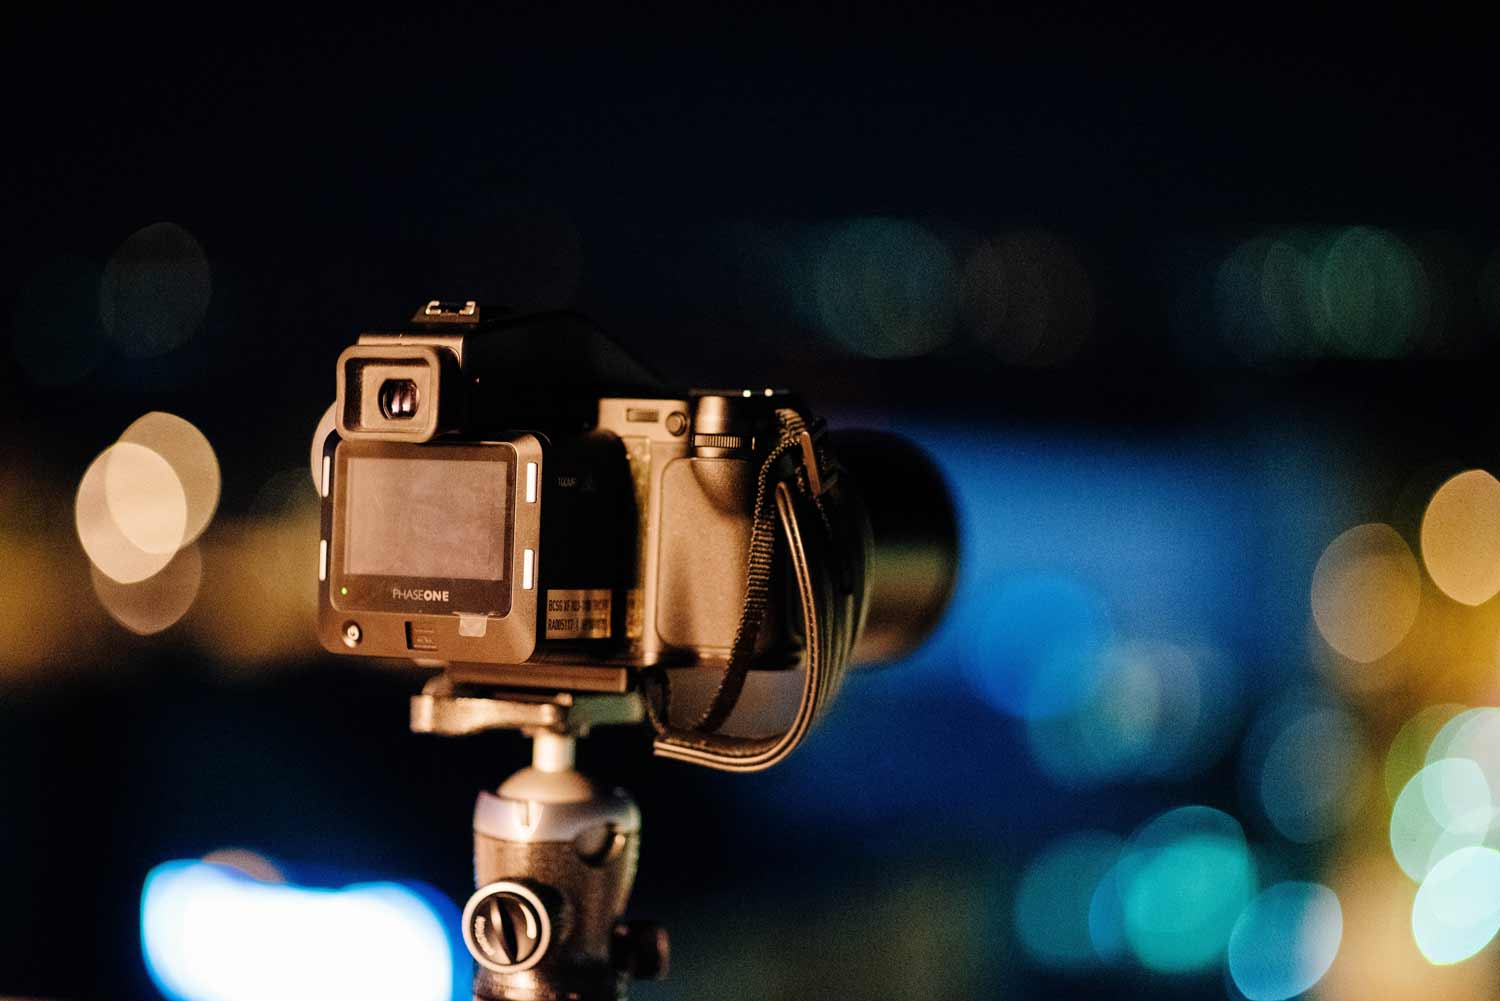 Image of a camera set up on a tripod for event photography